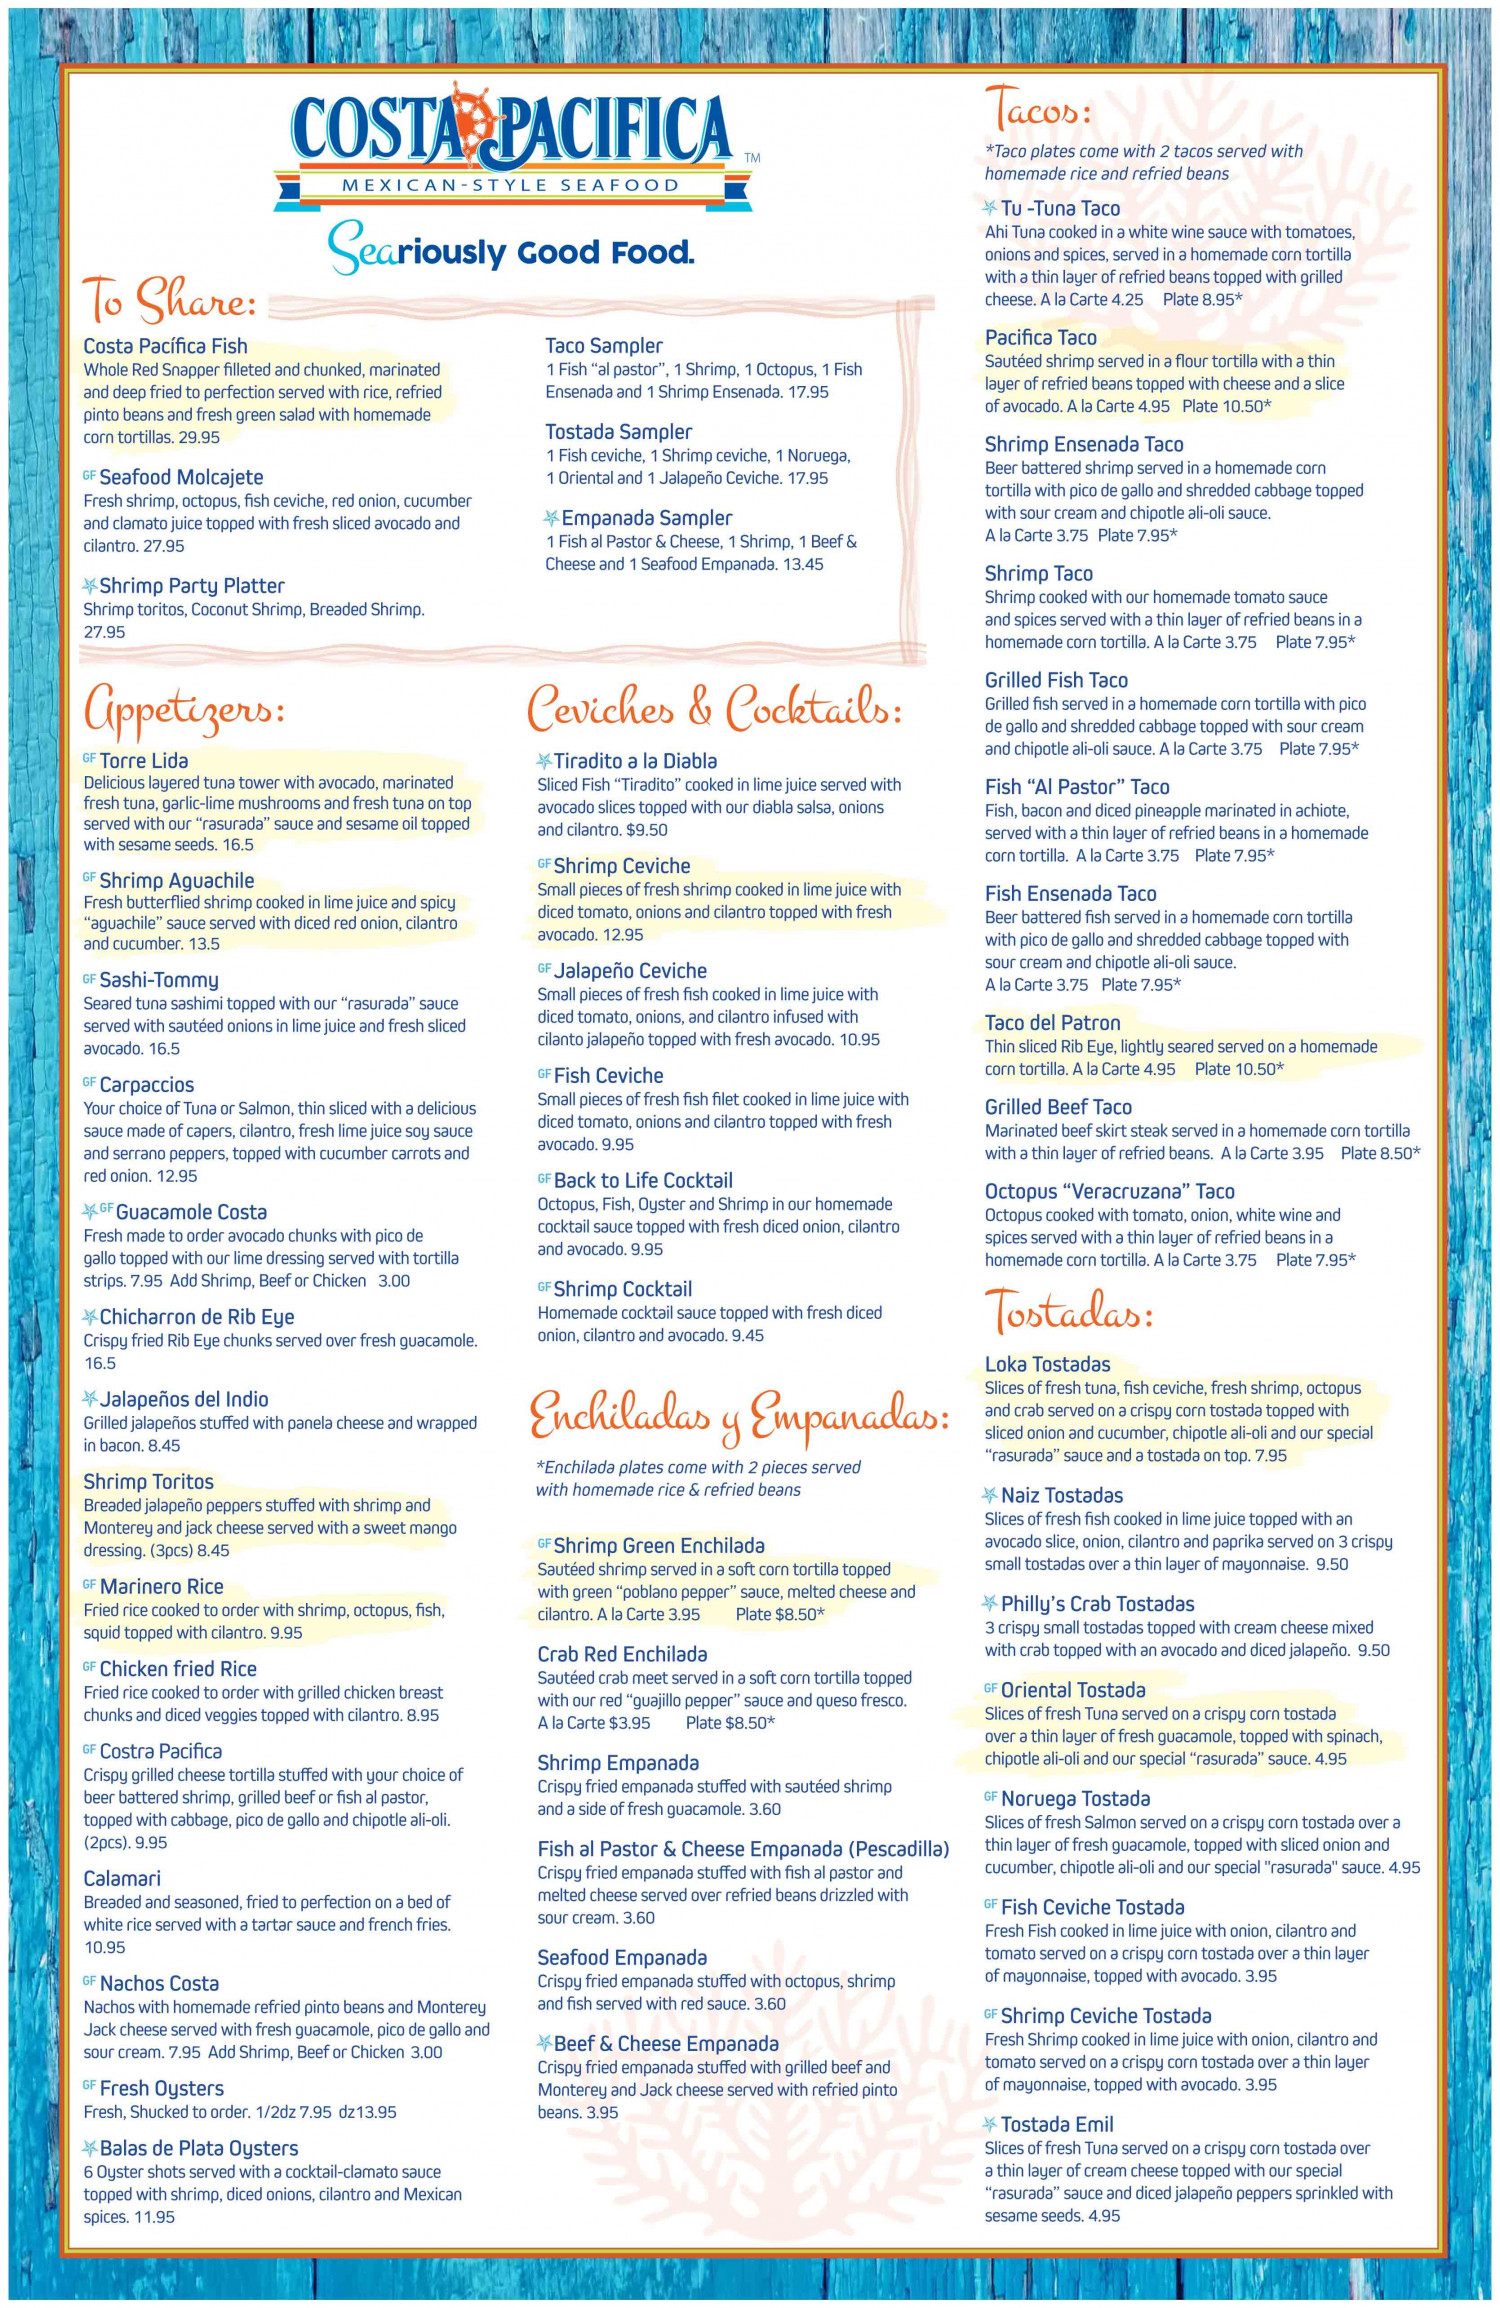 Costa Pacifica Menu   Infographic